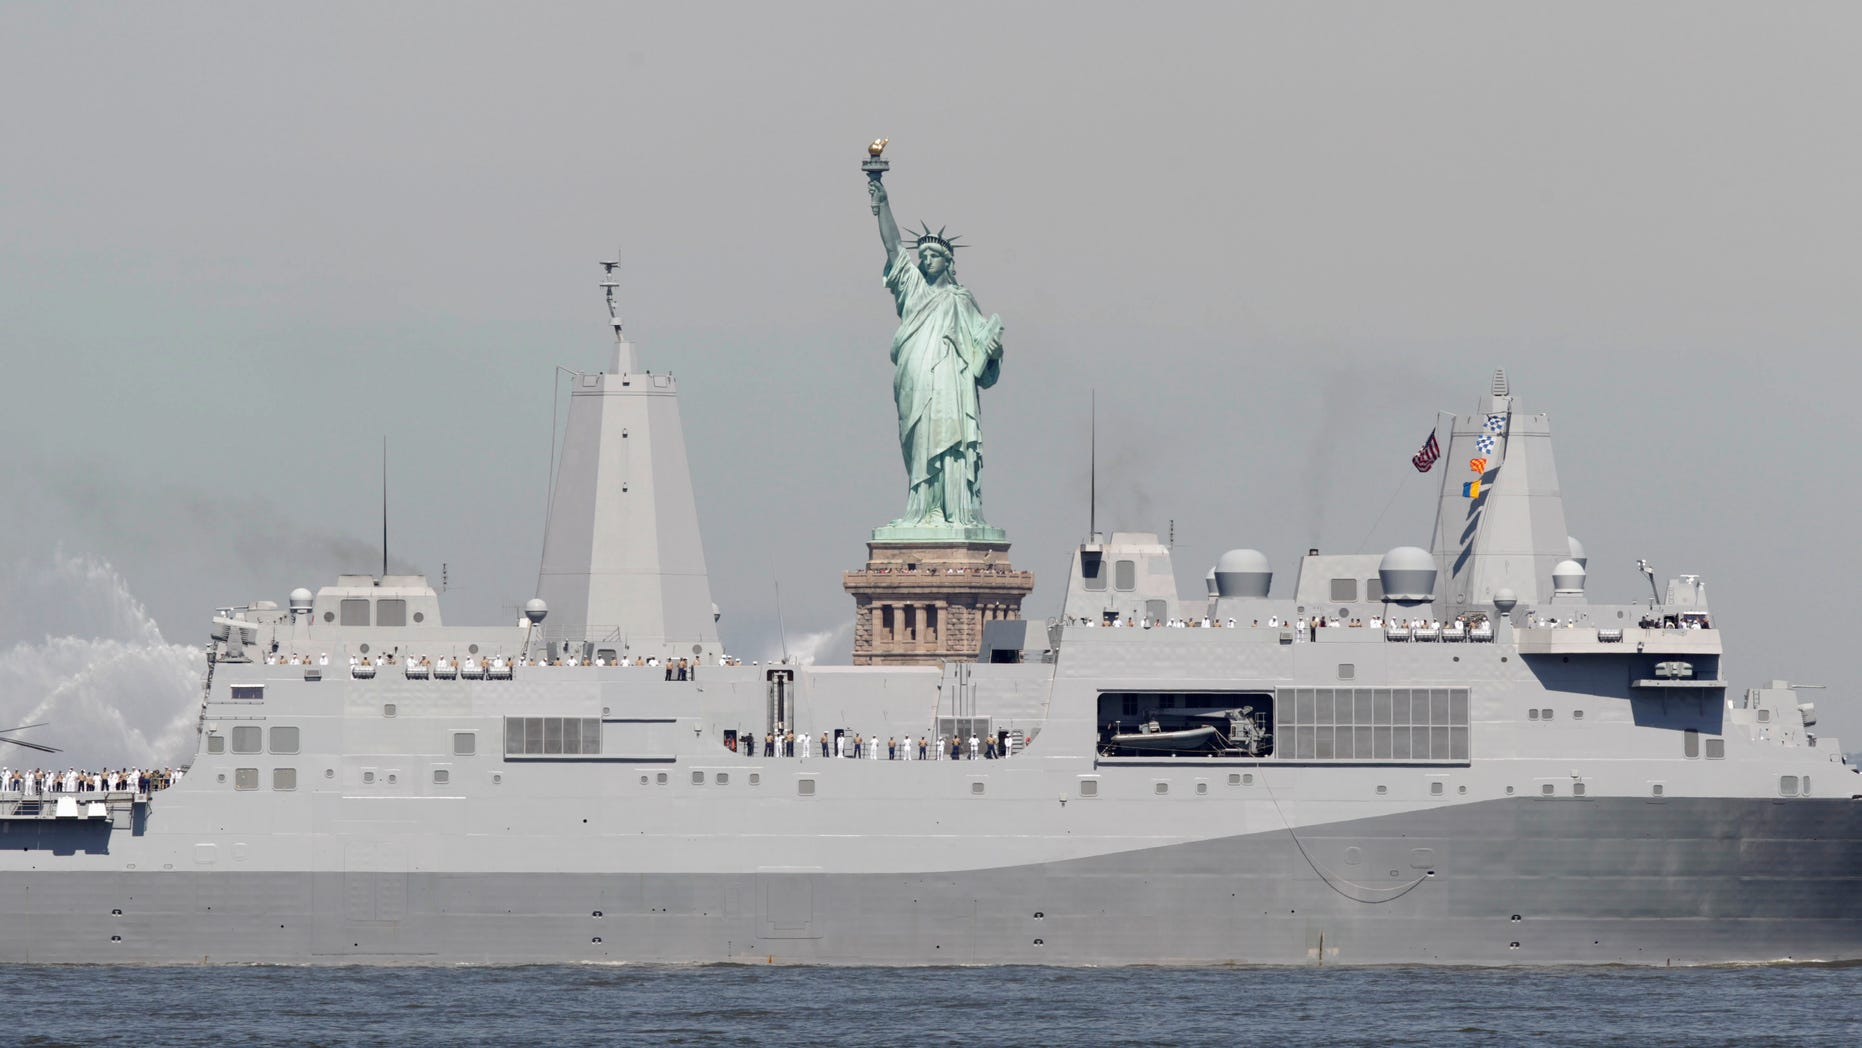 Sailors stand on the deck as the USS New York passes the Statue of Liberty to kick off Fleet Week in New York, Wednesday, May 25, 2011. Fleet Week ends on Memorial Day with a military flyover honoring American military personnel who lost their lives in service.